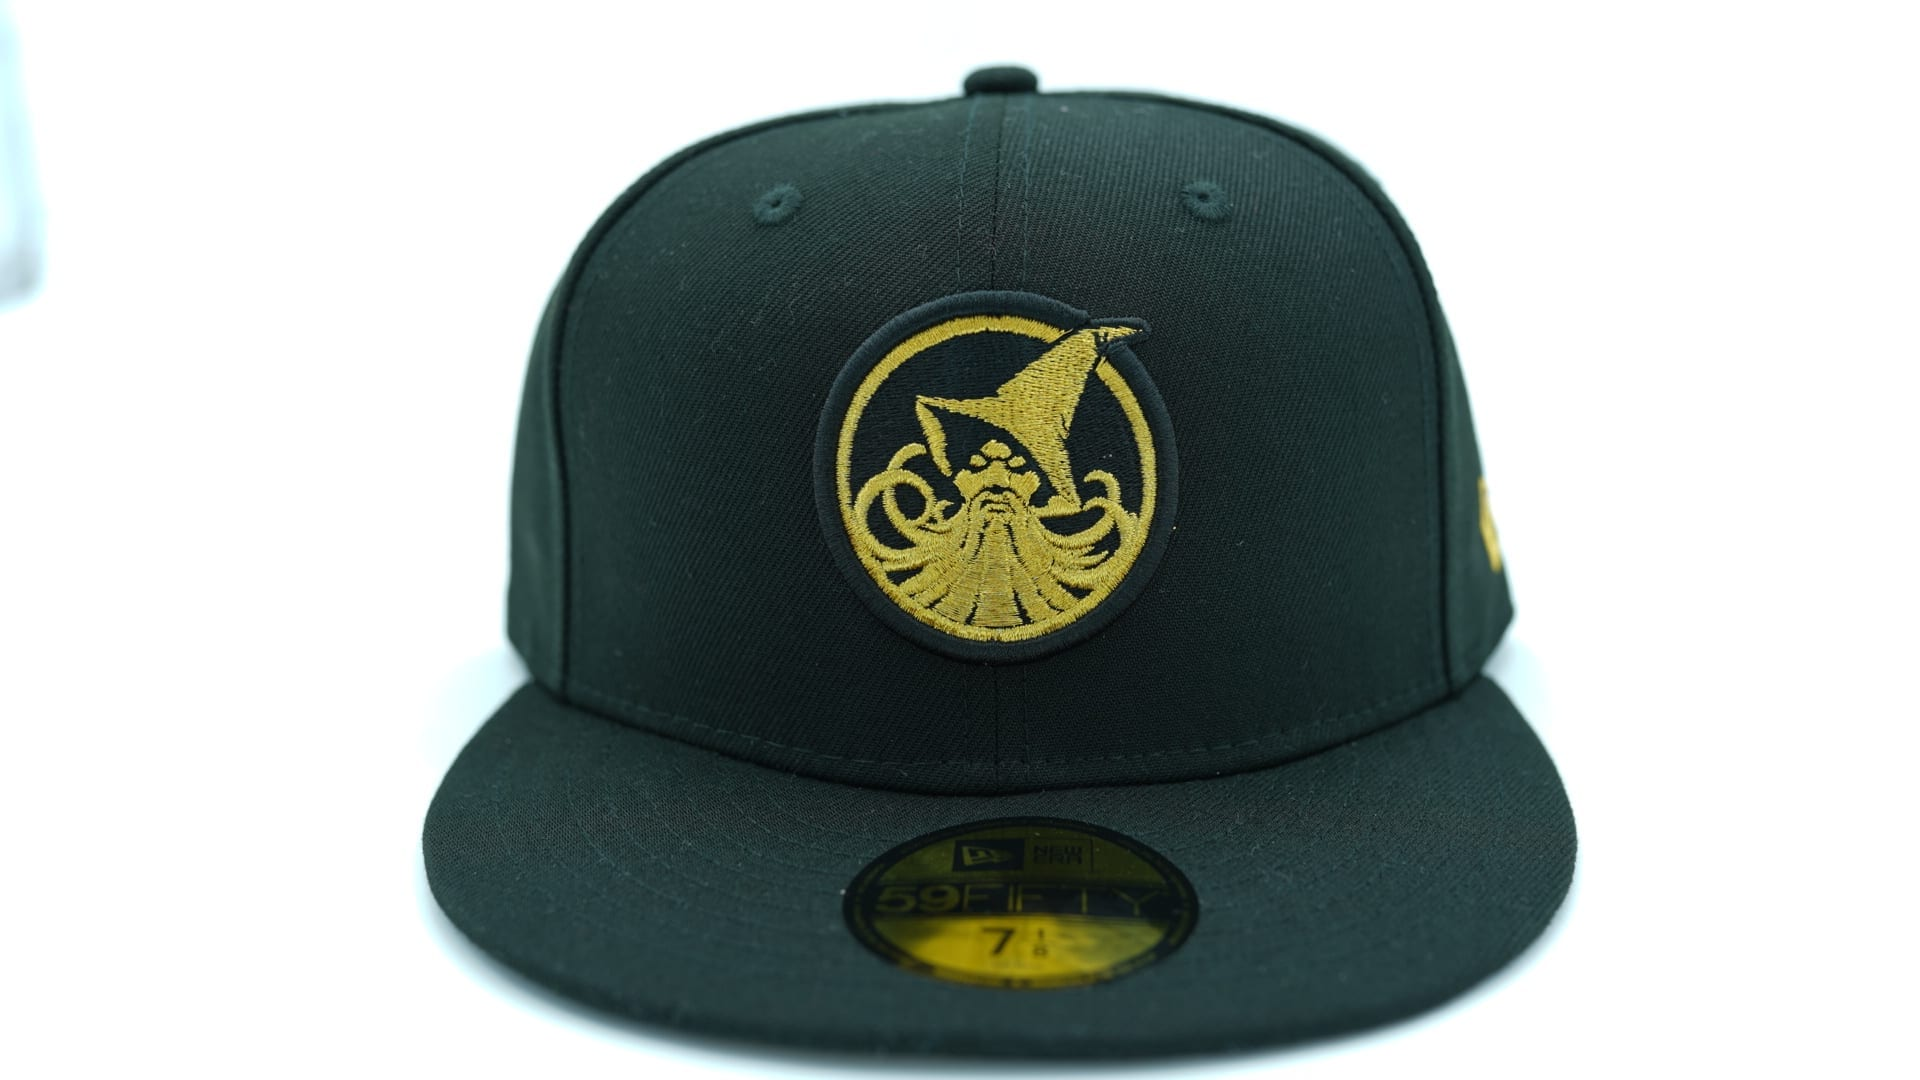 New York Yankees Donegal 59Fifty Fitted Cap by TODD SNYDER x NEW ERA